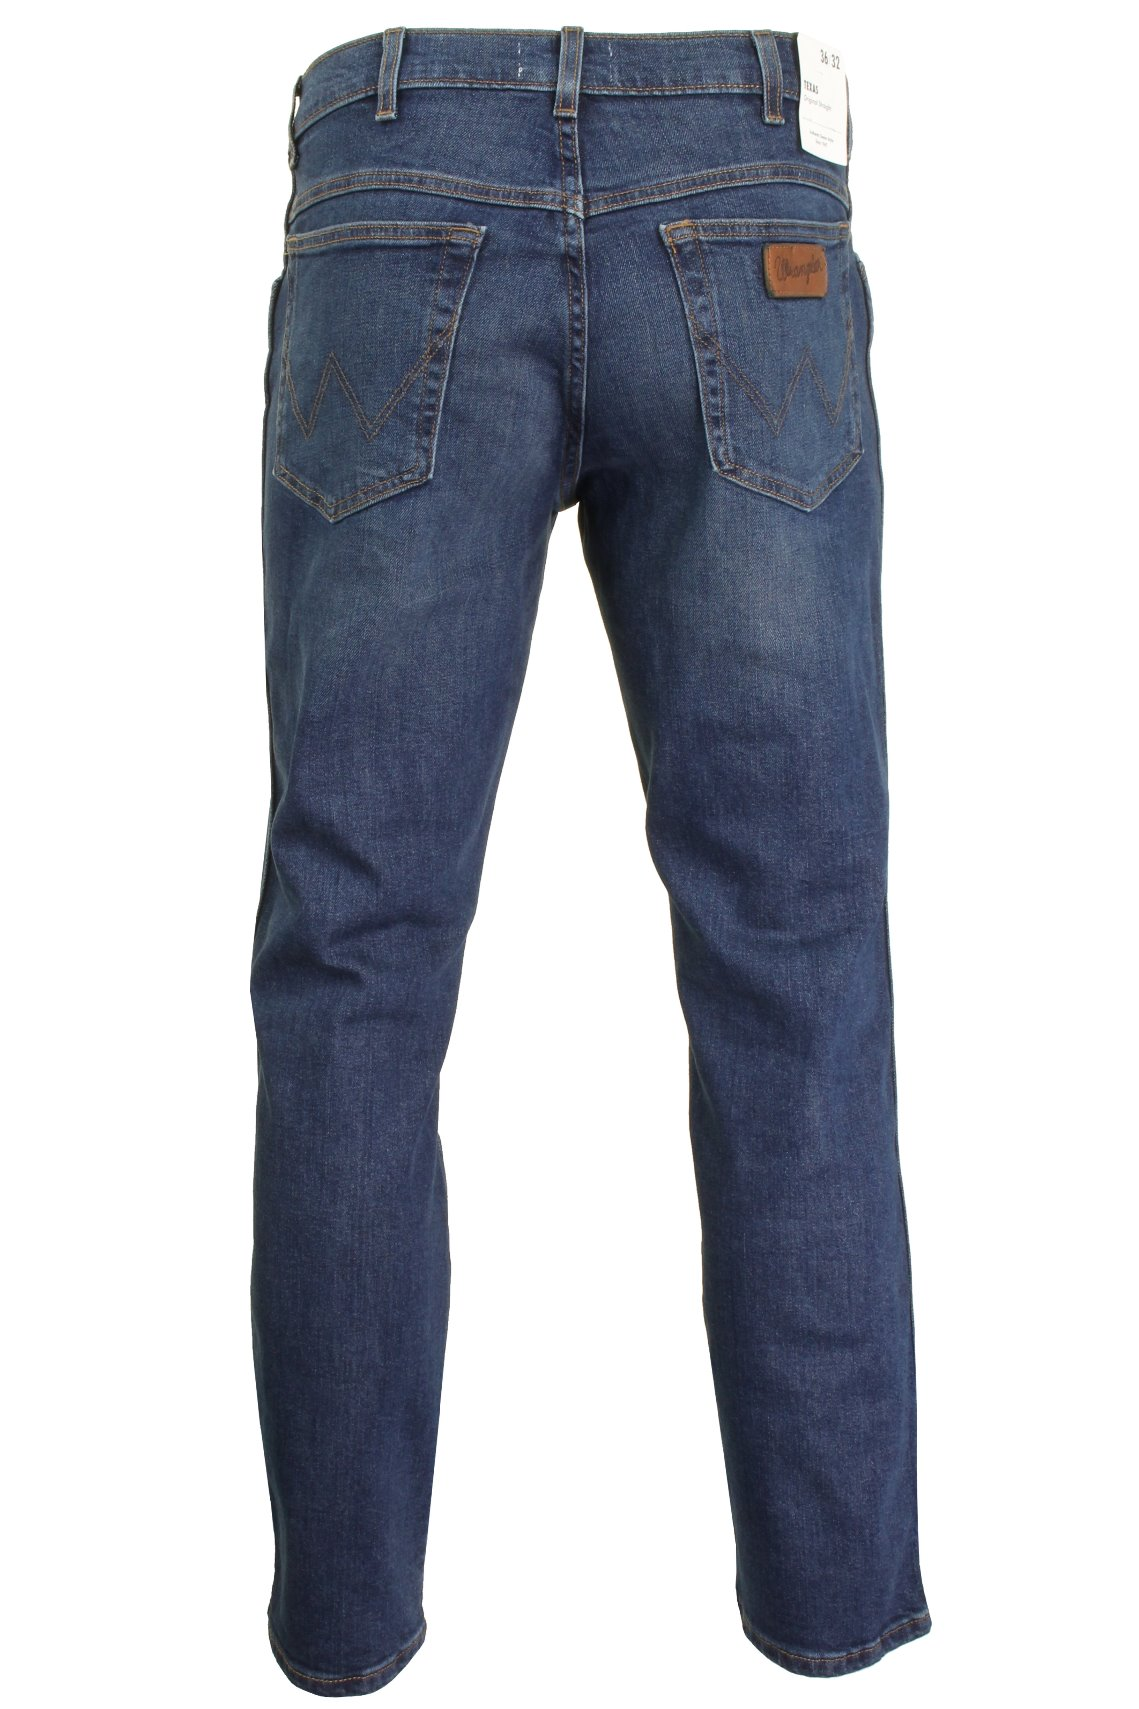 Mens-Wrangler-039-Texas-039-Jeans-Denim-Stretch-Original-Straight-Fit thumbnail 14